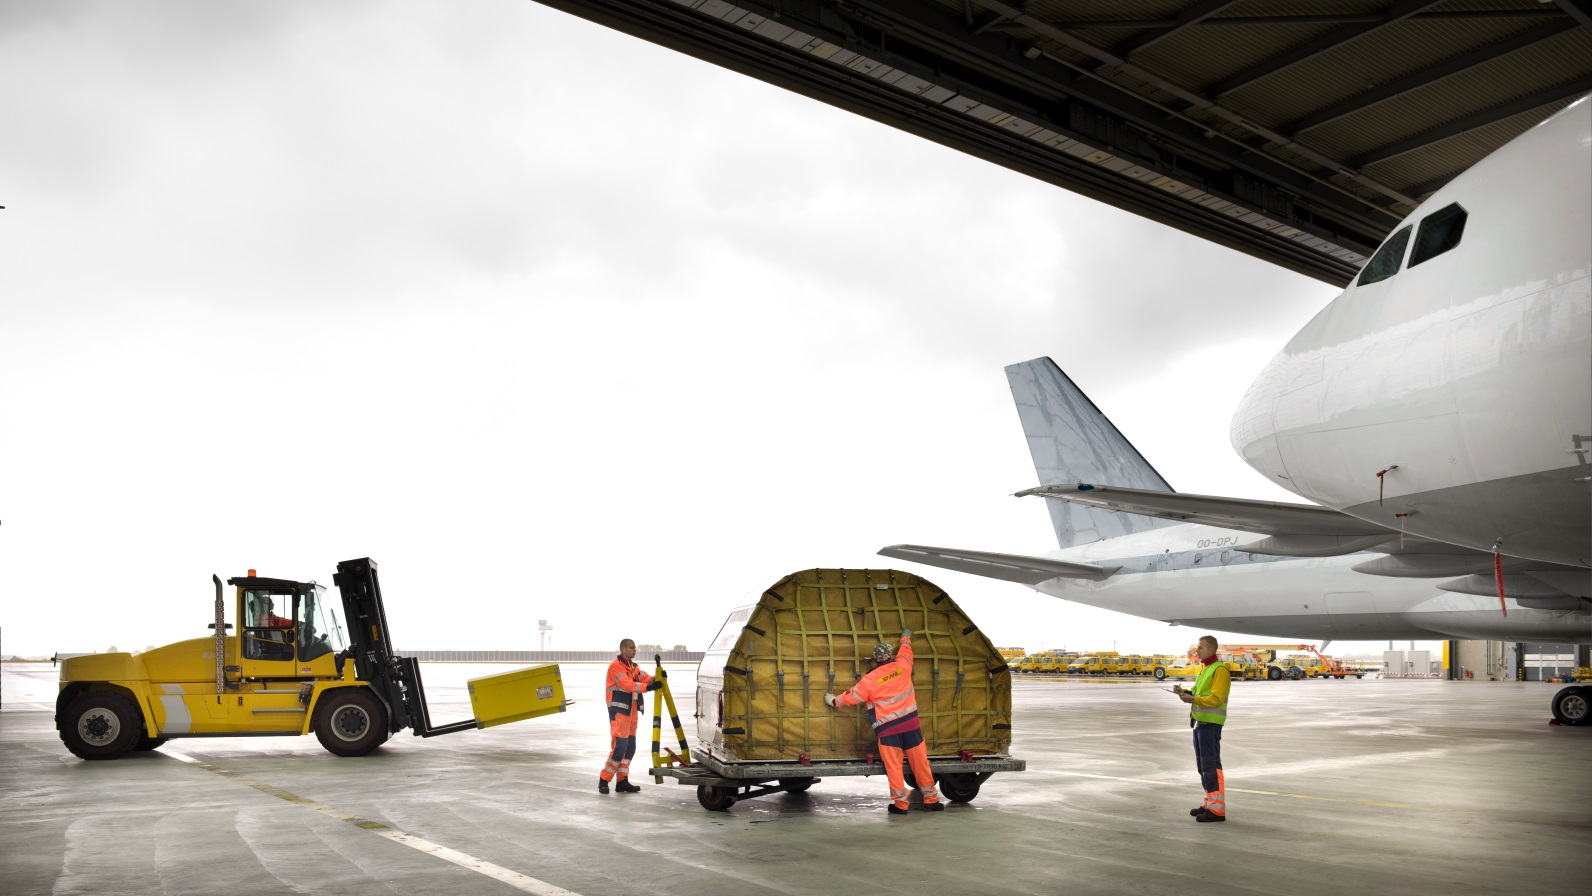 Global Air Freight Forwarding   DHL Global Forwarding   United Kingdom Our flexible and diverse products  global reach   local knowledge  all  delivered hassle free by our Air Freight Experts